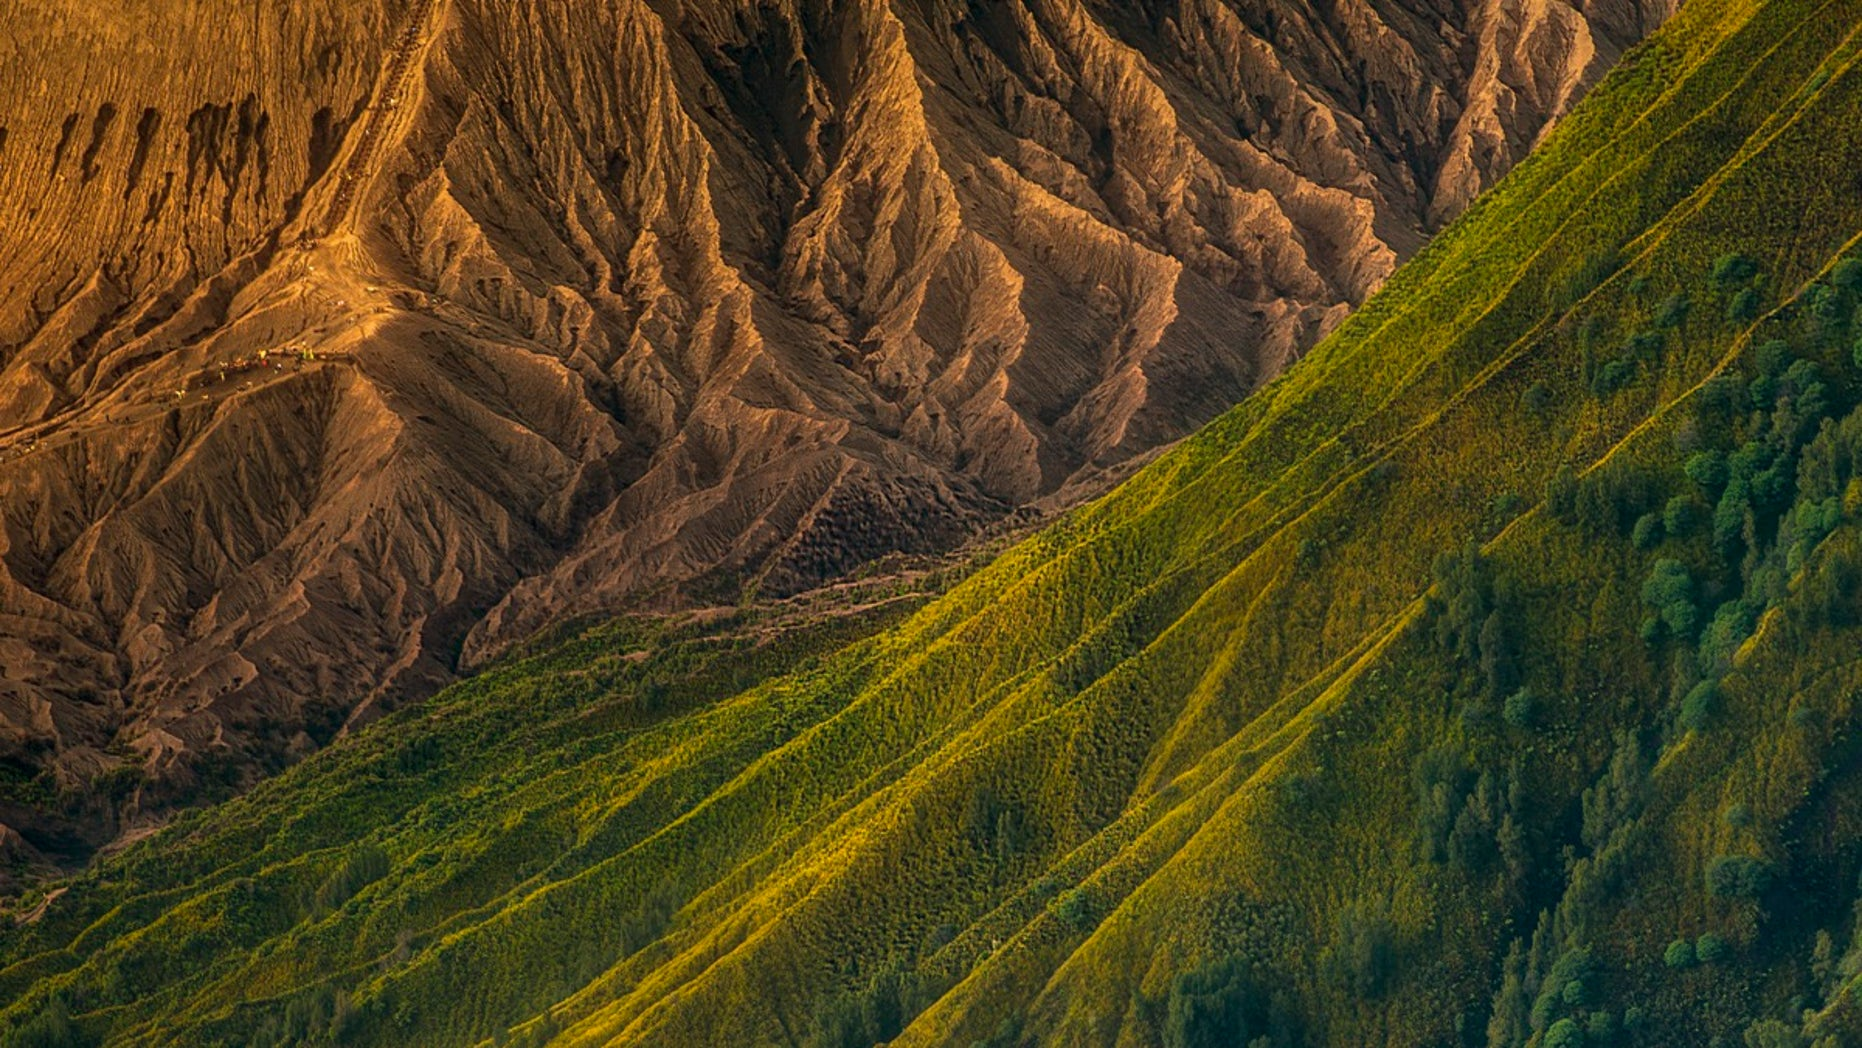 Here, the ridges of Batok and Bromo volcanoes in Indonesia.